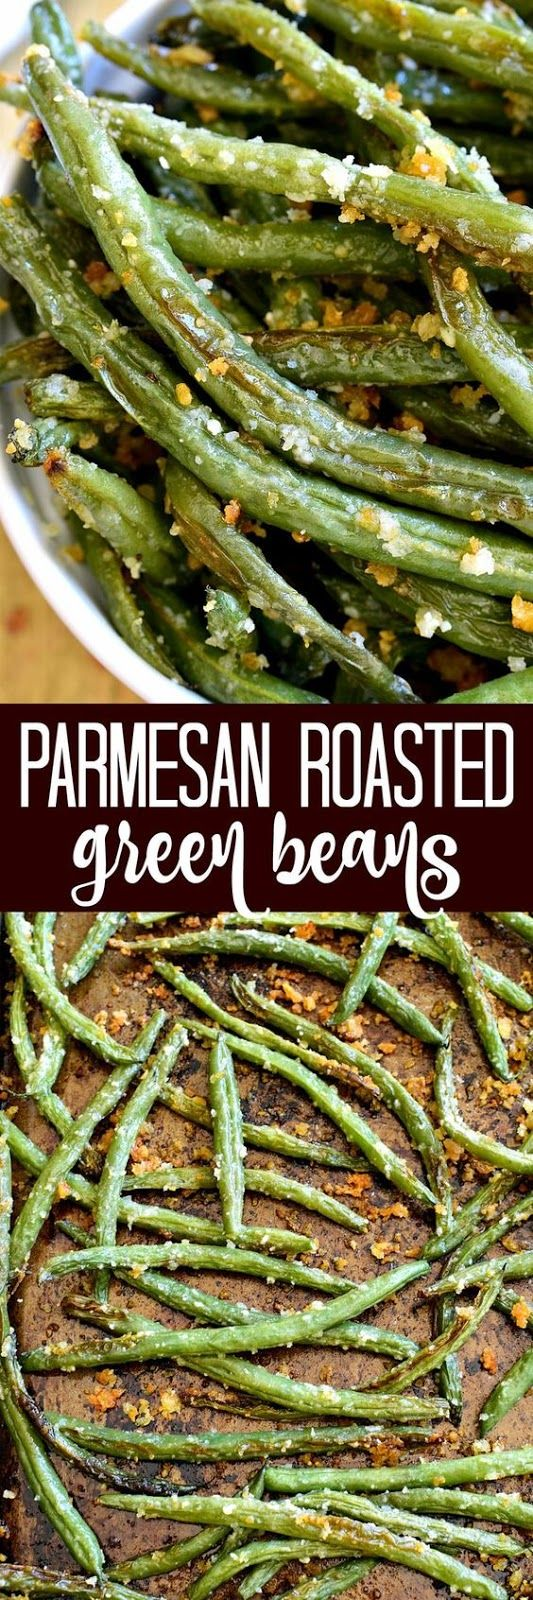 INGREDIENTS 1 lb. fresh green beans 2 Tbsp. olive oil 2 Tbsp. grated parmesan cheese 2 Tbsp. panko bread crumbs ½ tsp. kosh...